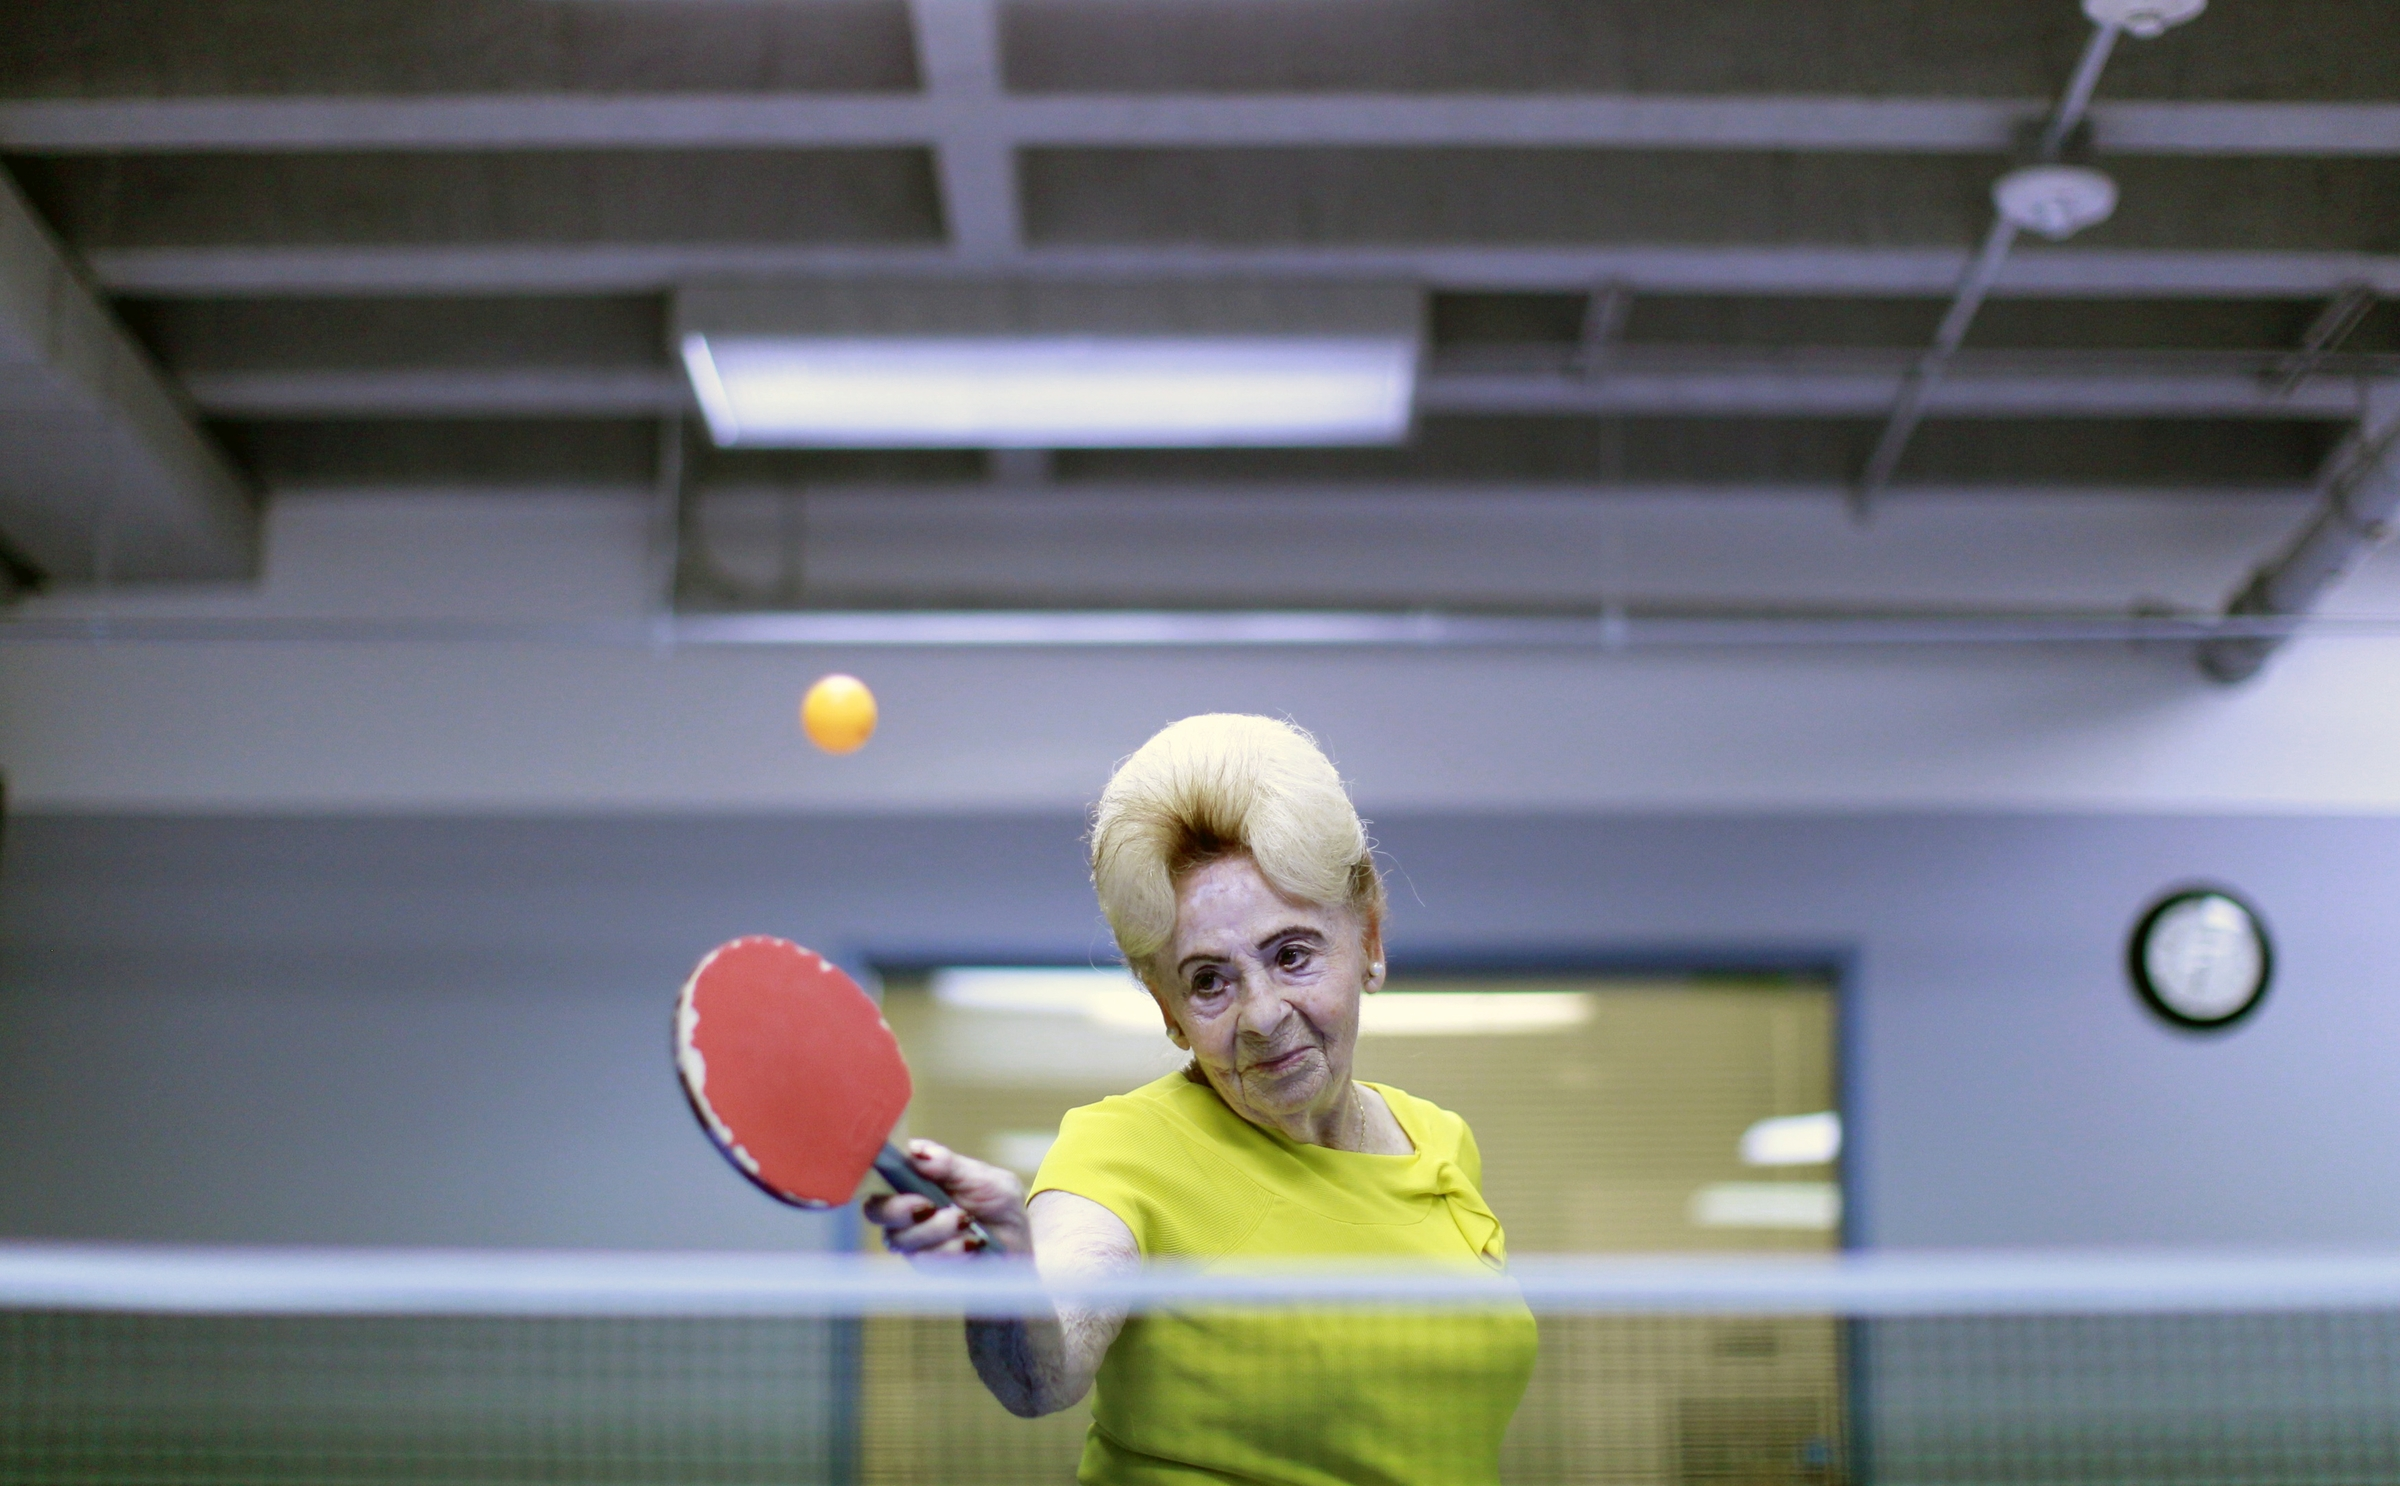 Lucy Nicholson,(American/British, born England), Alzheimer's Ping Pong Therapy, Los Angeles, CA, 2011, printed 2016. Inkjet print, 10 5/8 x 16 3/8 in. Courtesy of Lucy Nicholson/Reuters and the Brooklyn Museum.